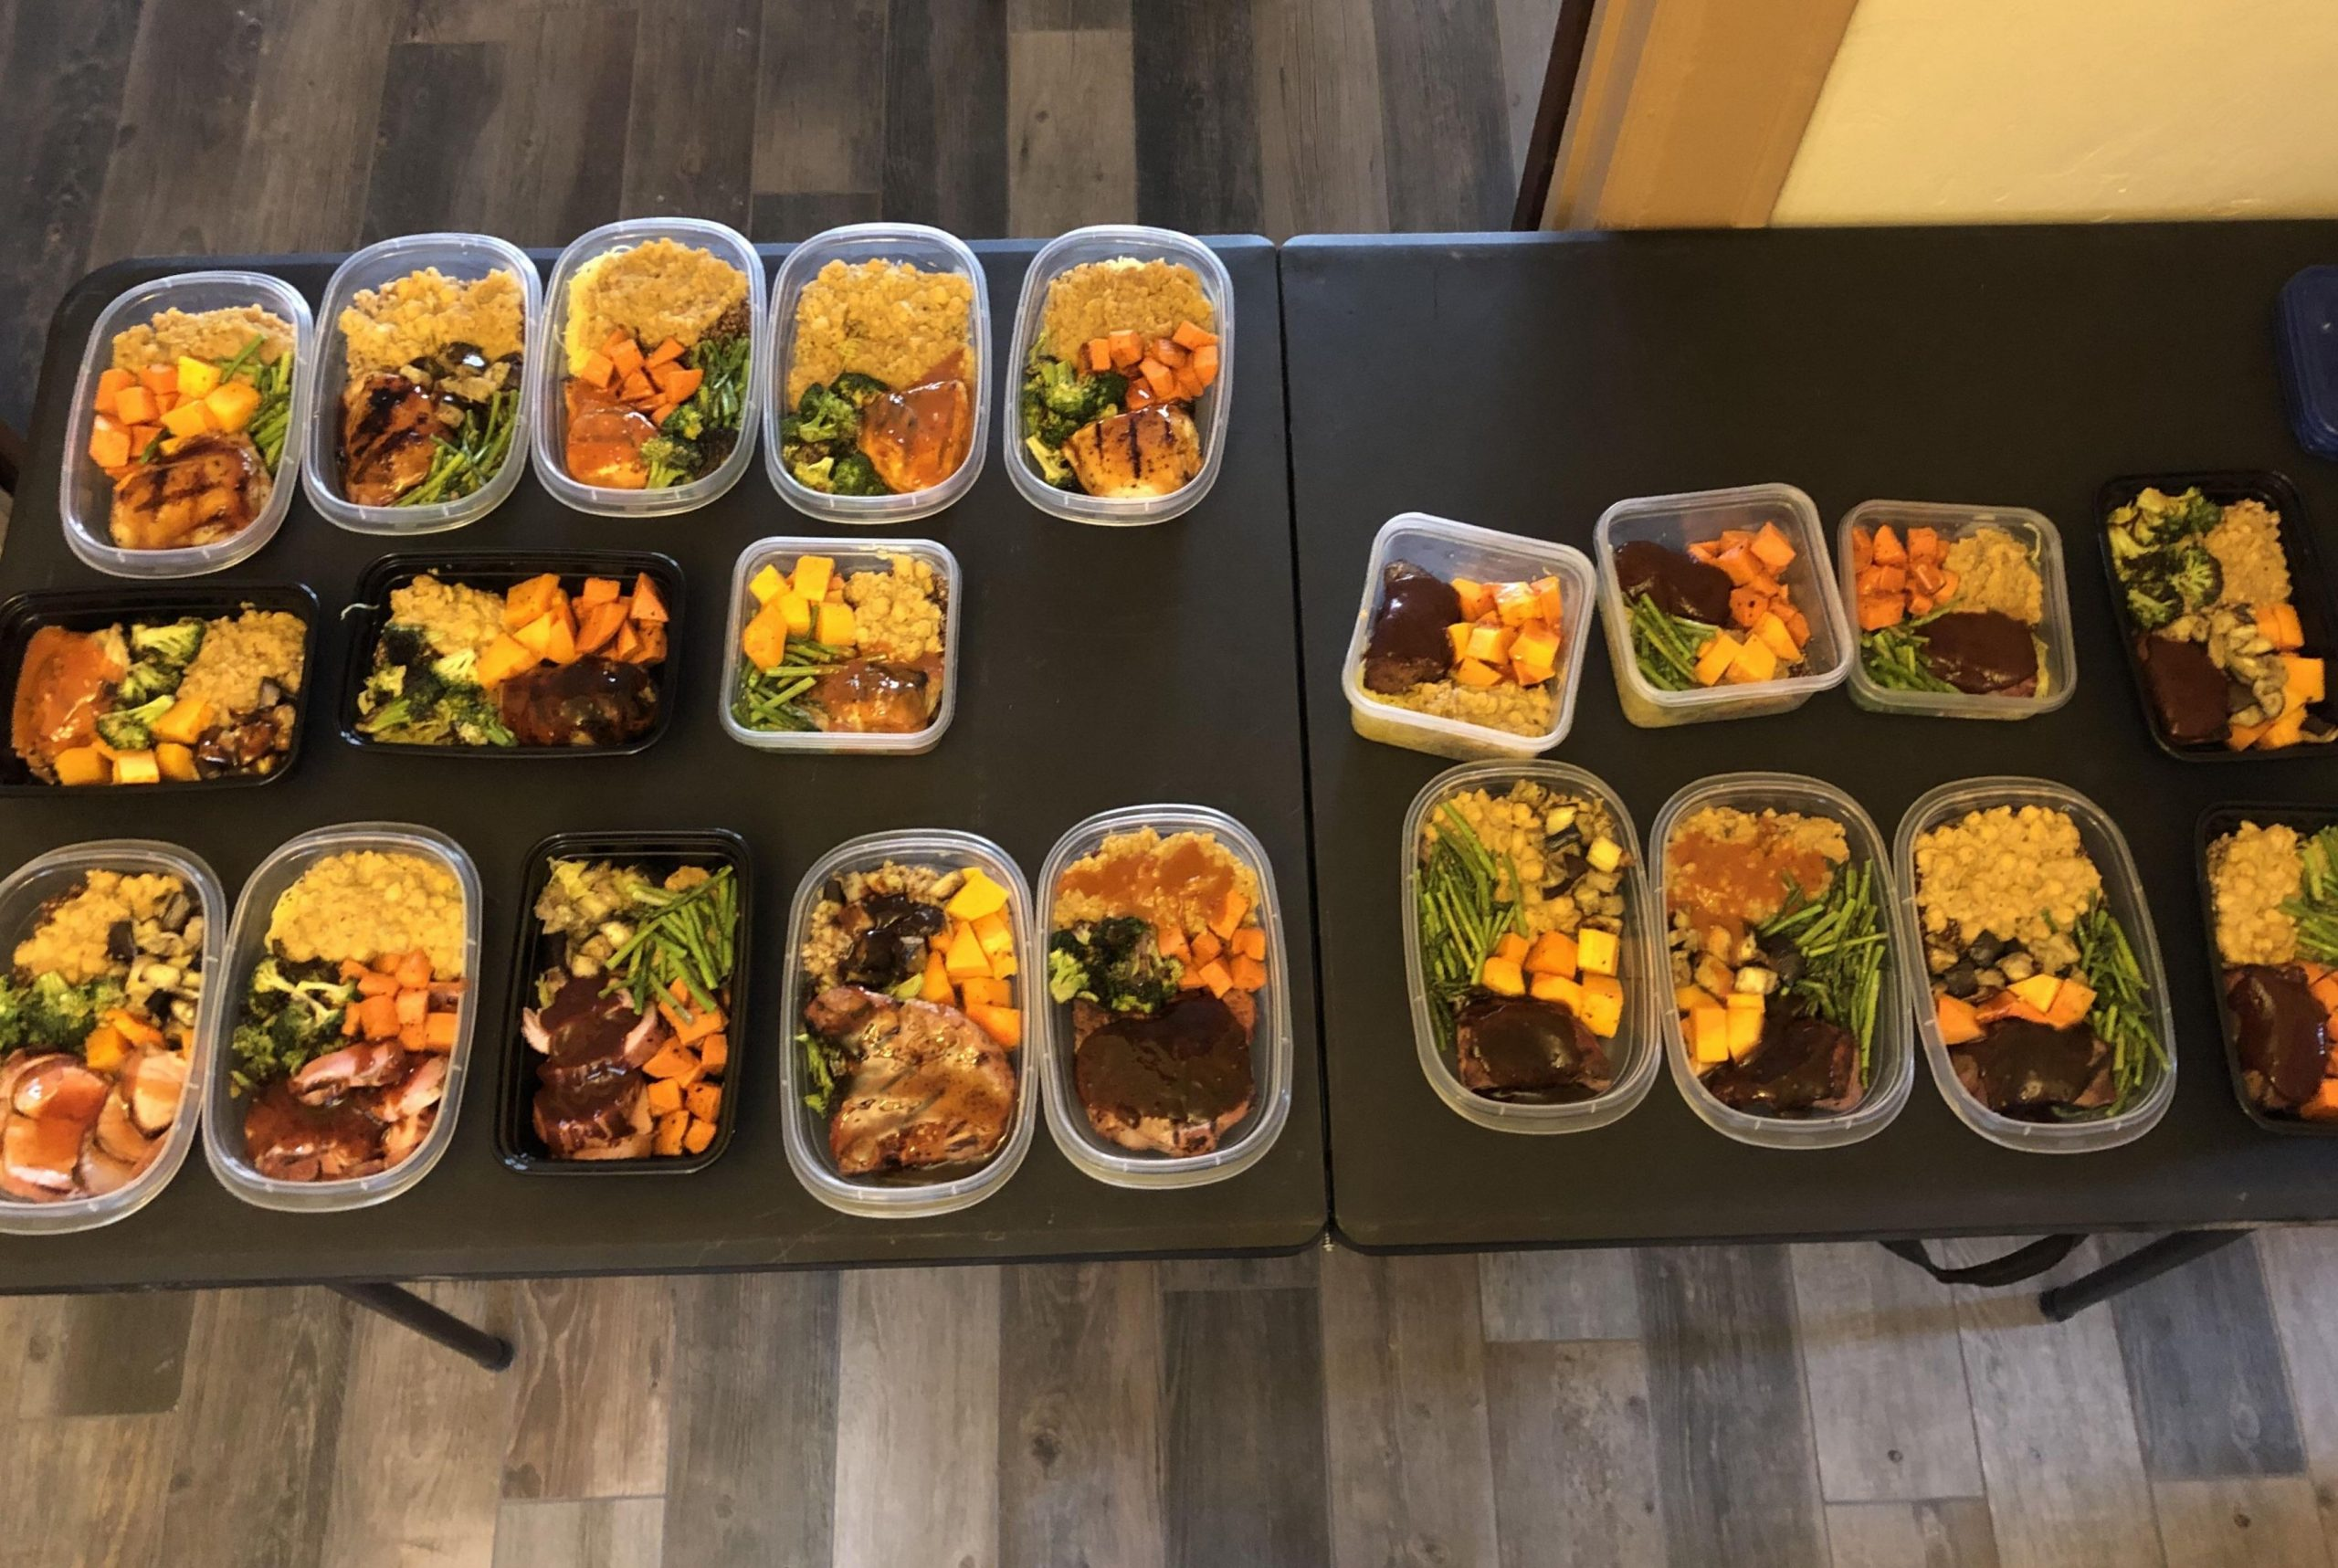 12 delicious, healthy meals for ~$12 each. Around 12 hours prep time ..